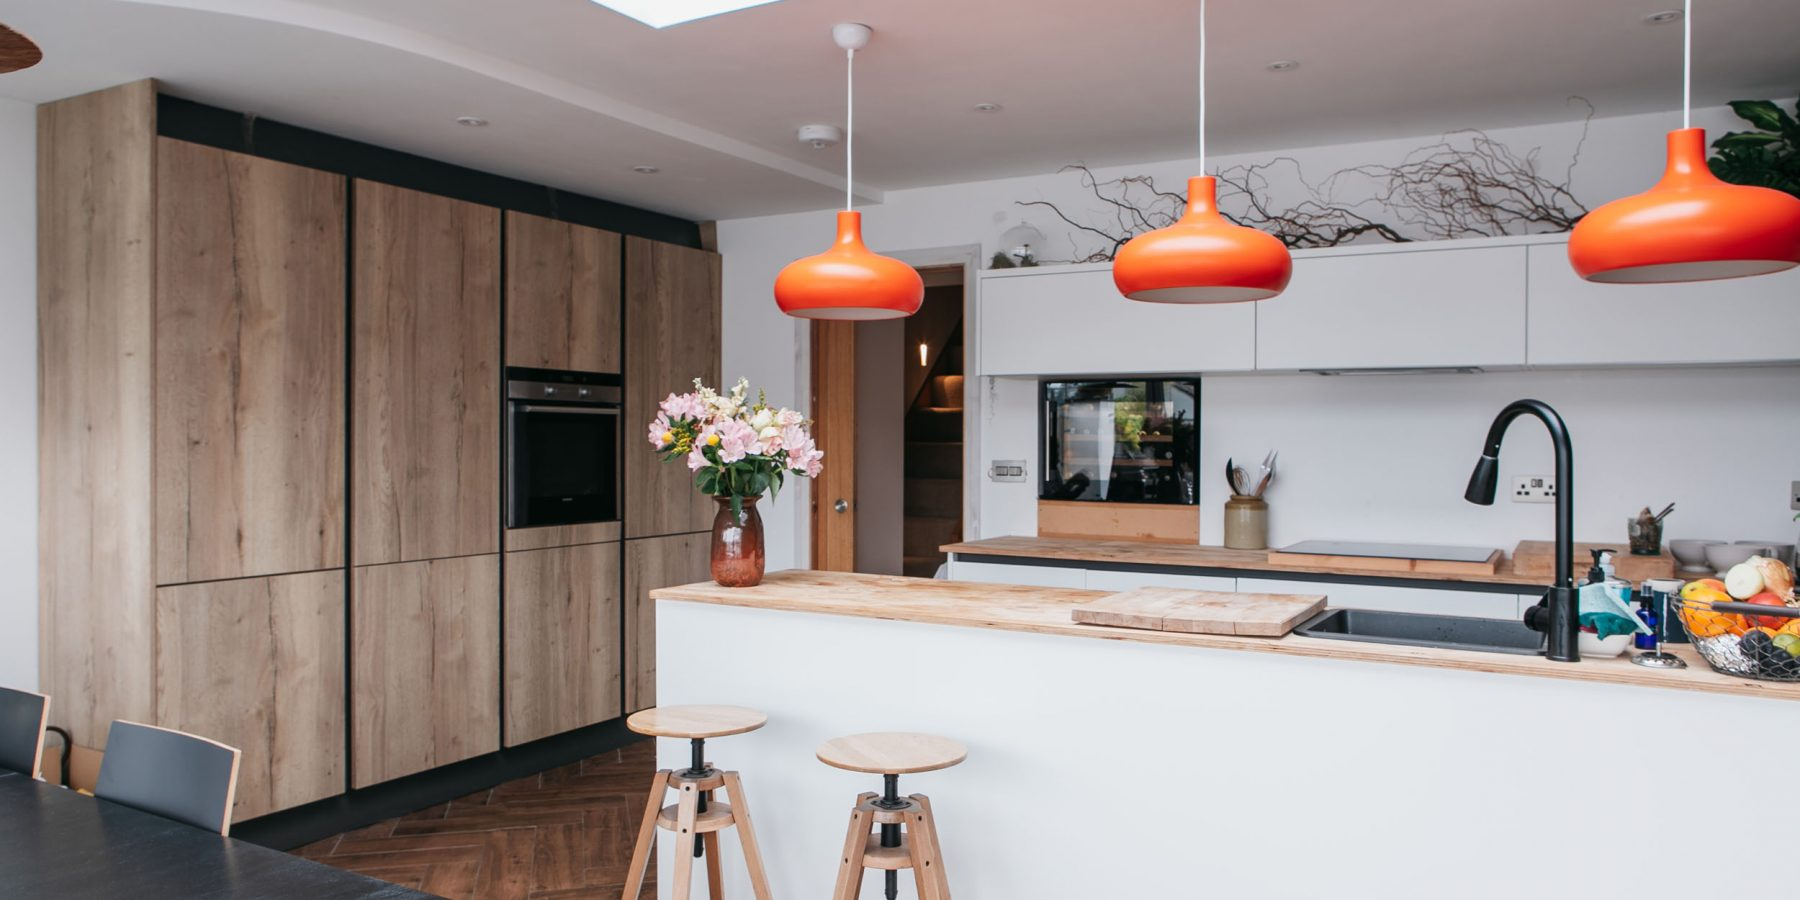 Thumbnail of http://White%20kitchen%20with%20orange%20lamps%20and%20wooden%20floor